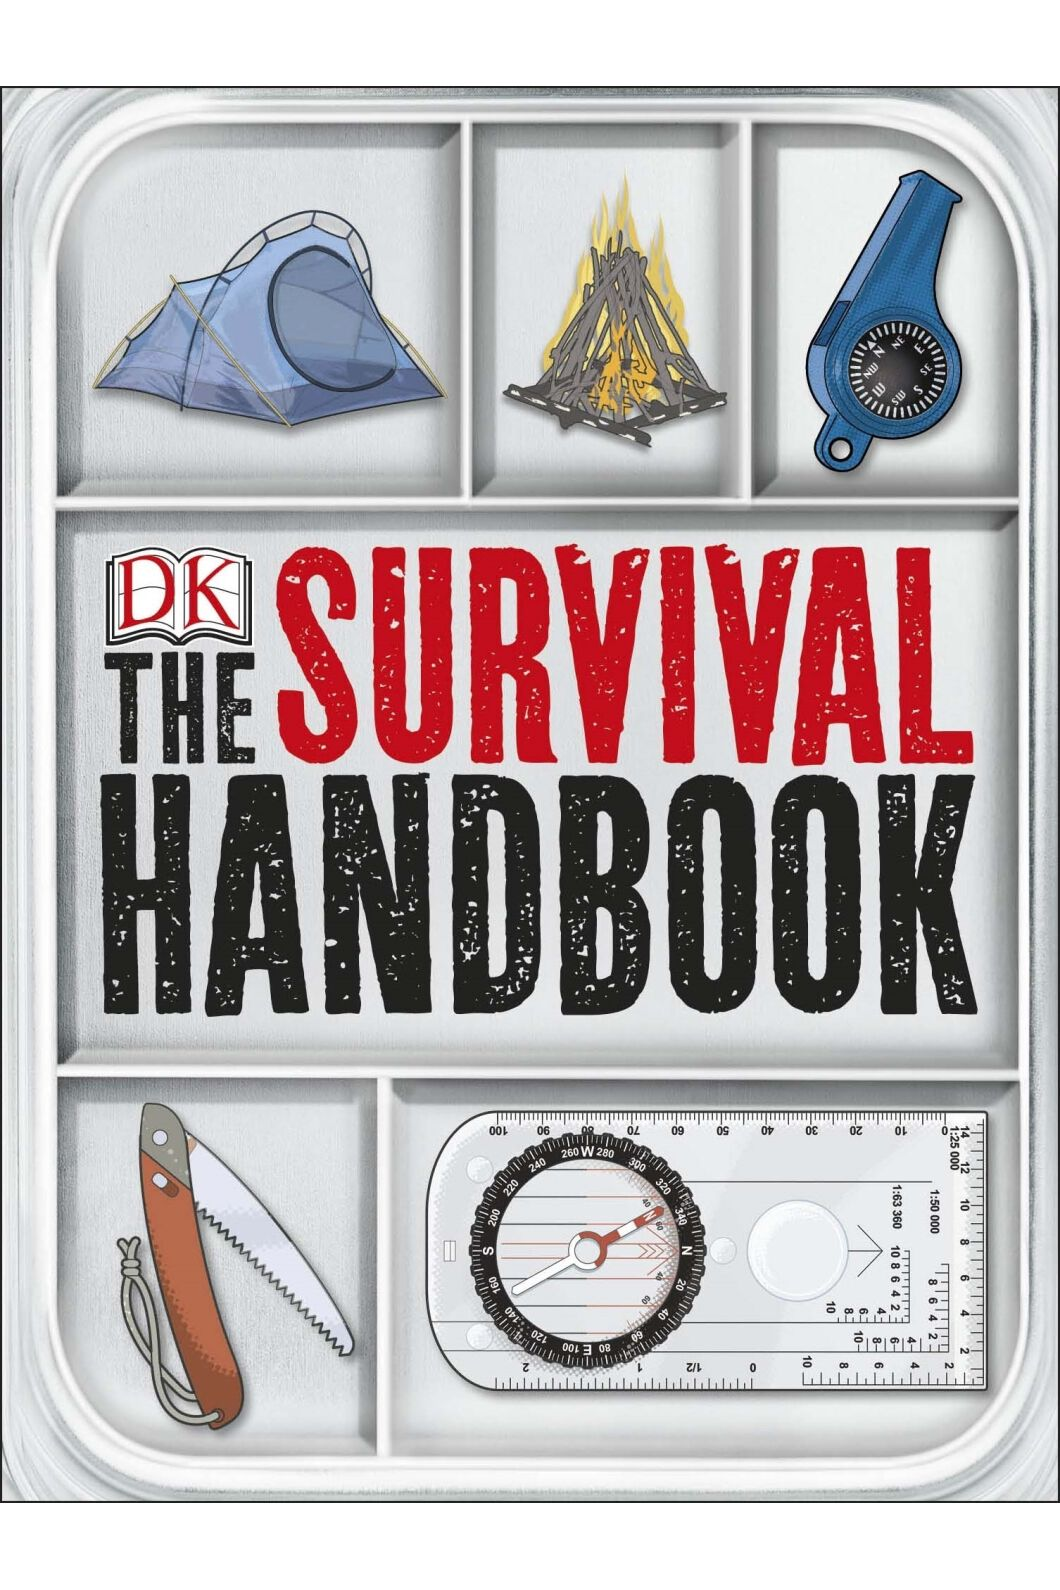 Penguin Survival Handbook with Mess Tin, None, hi-res